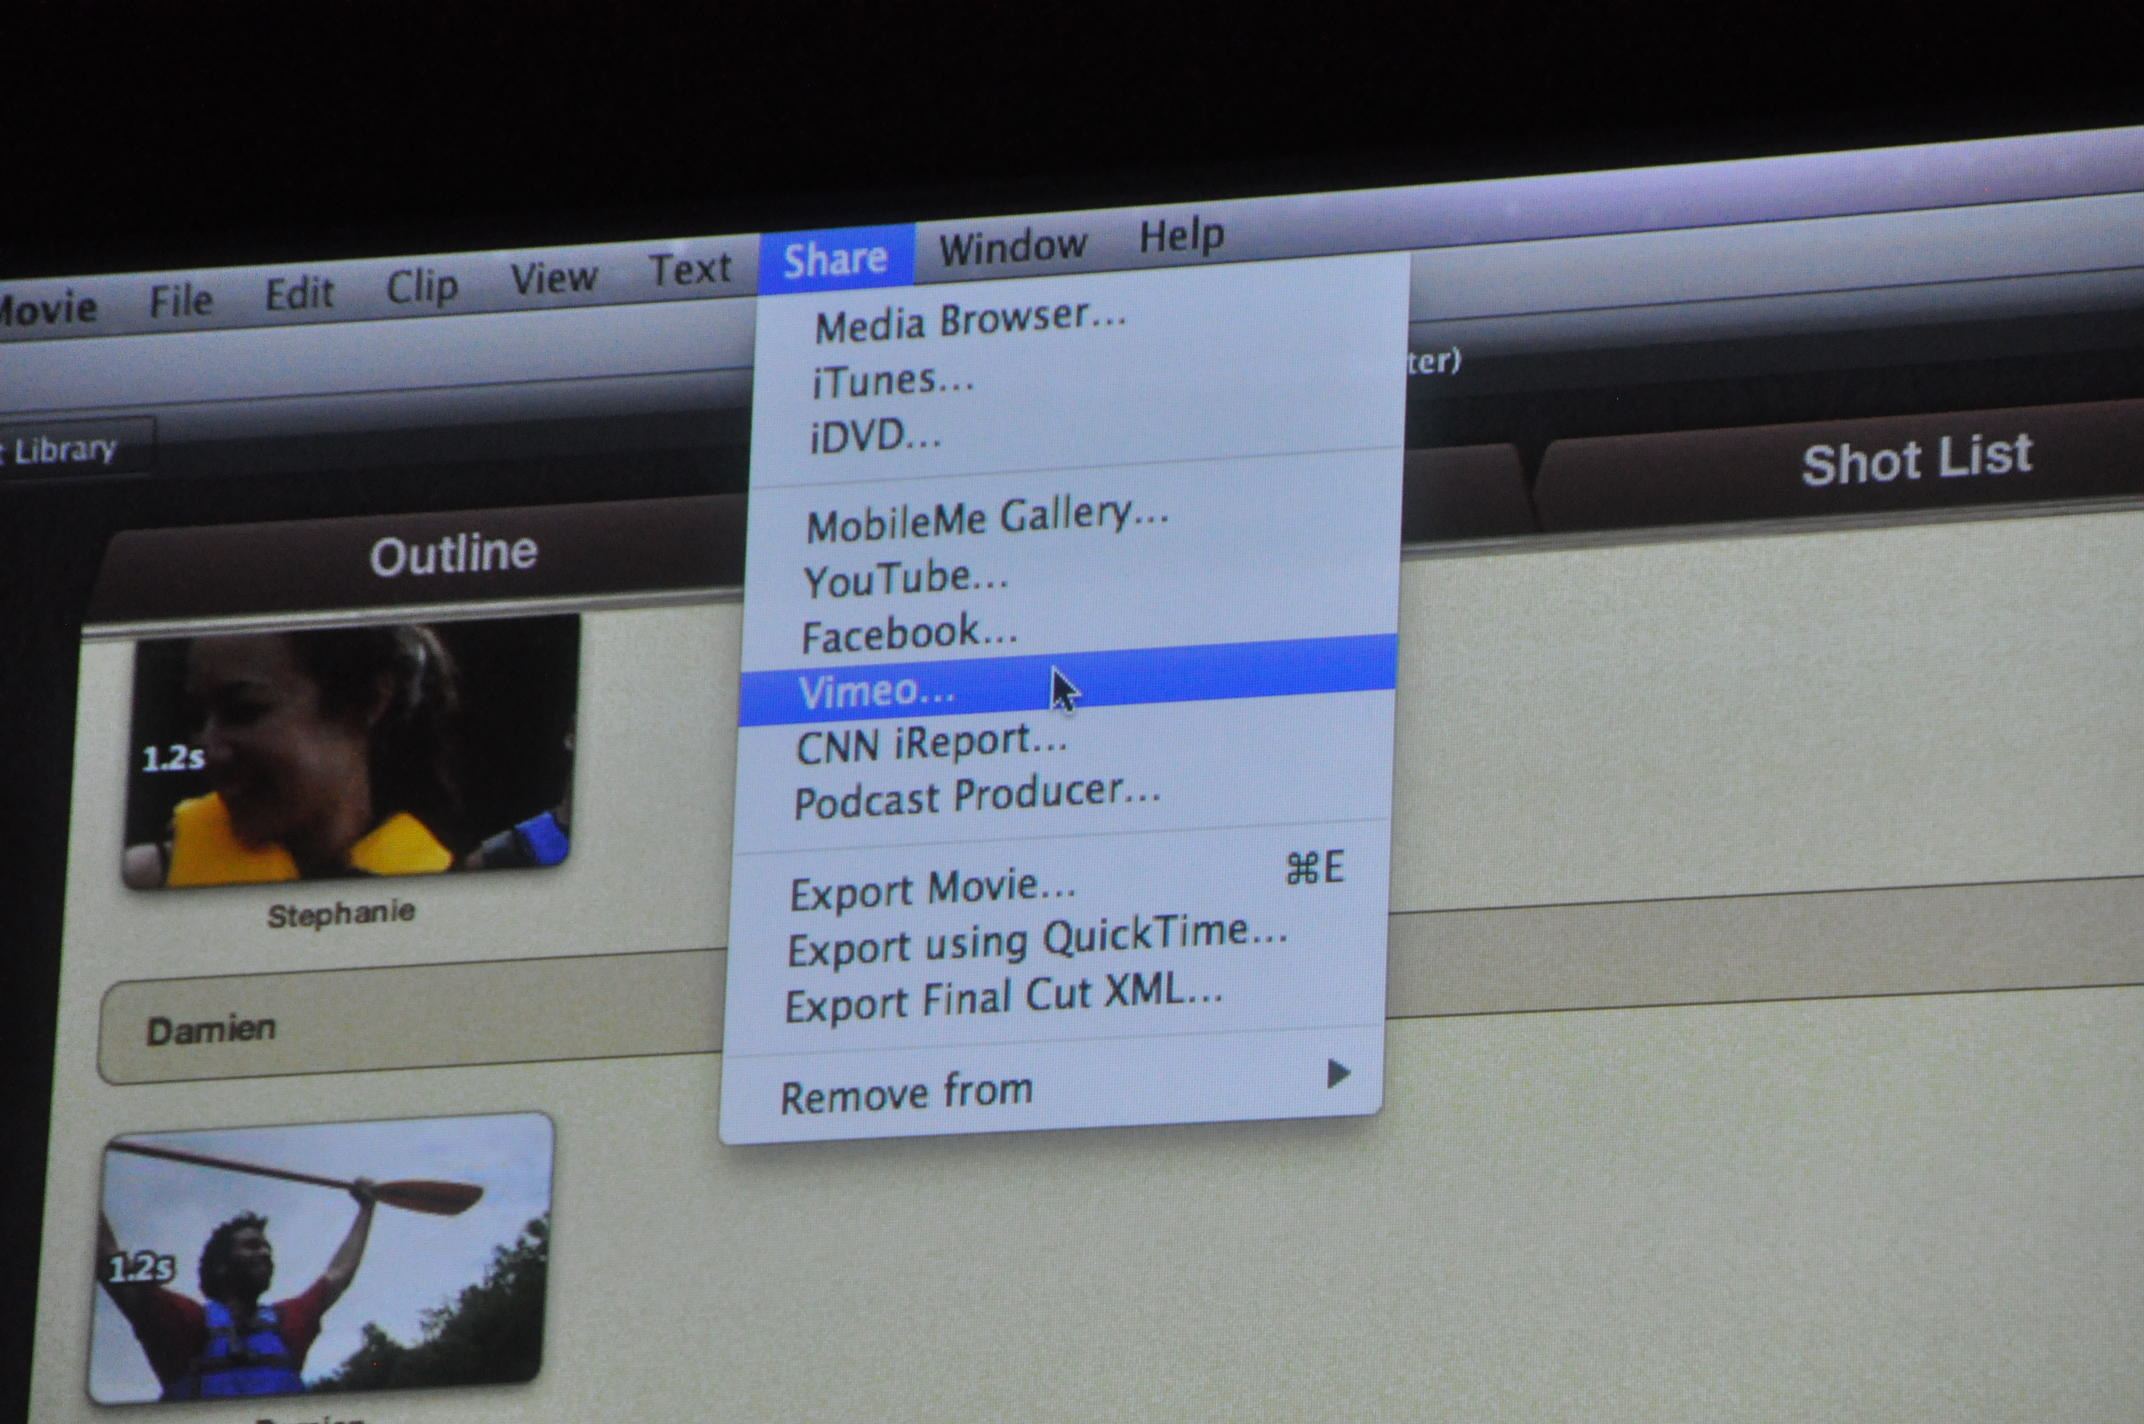 Exporting movies from iMovie